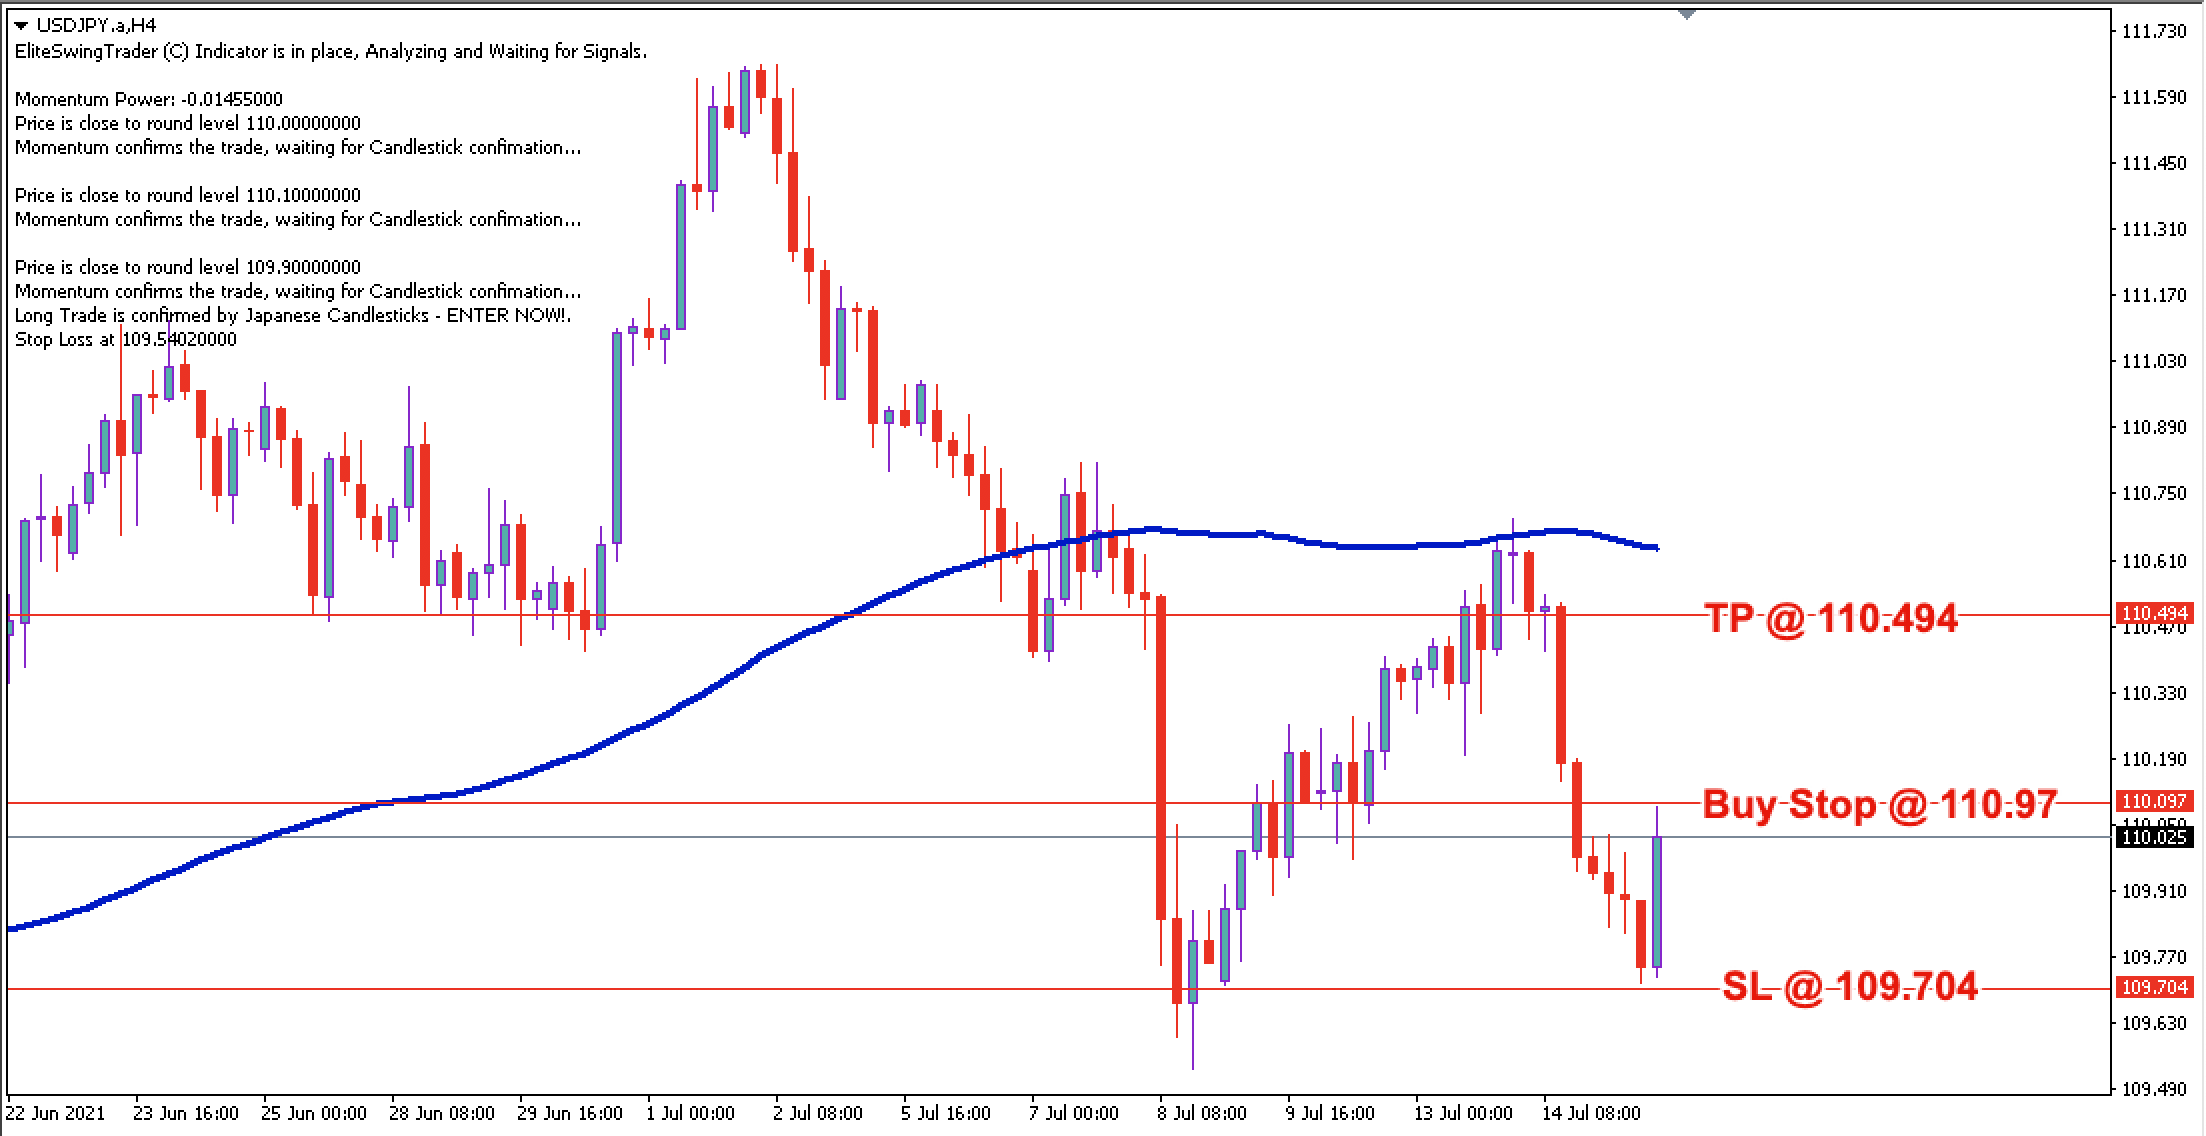 USD/JPY Daily Price Forecast – 15th July 2021